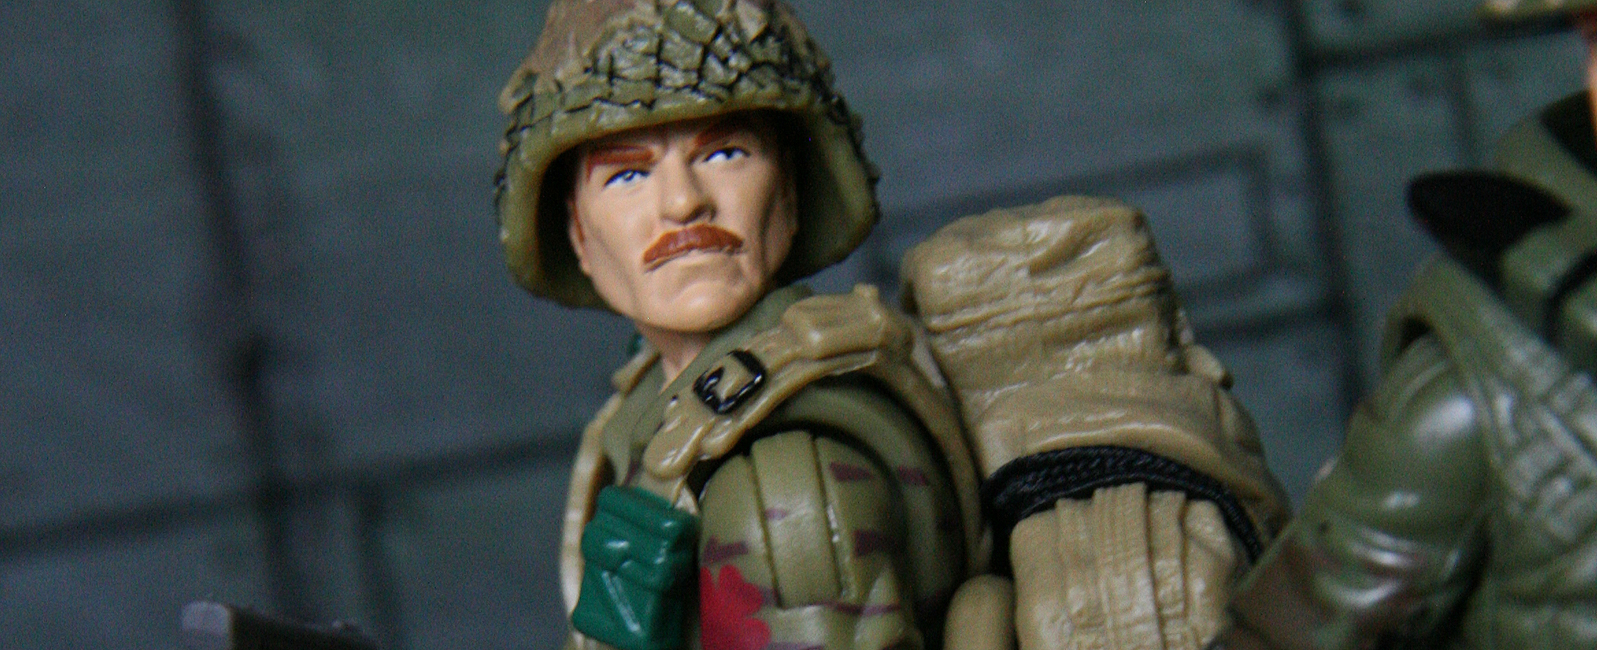 G.I. Joe Club Footloose Review